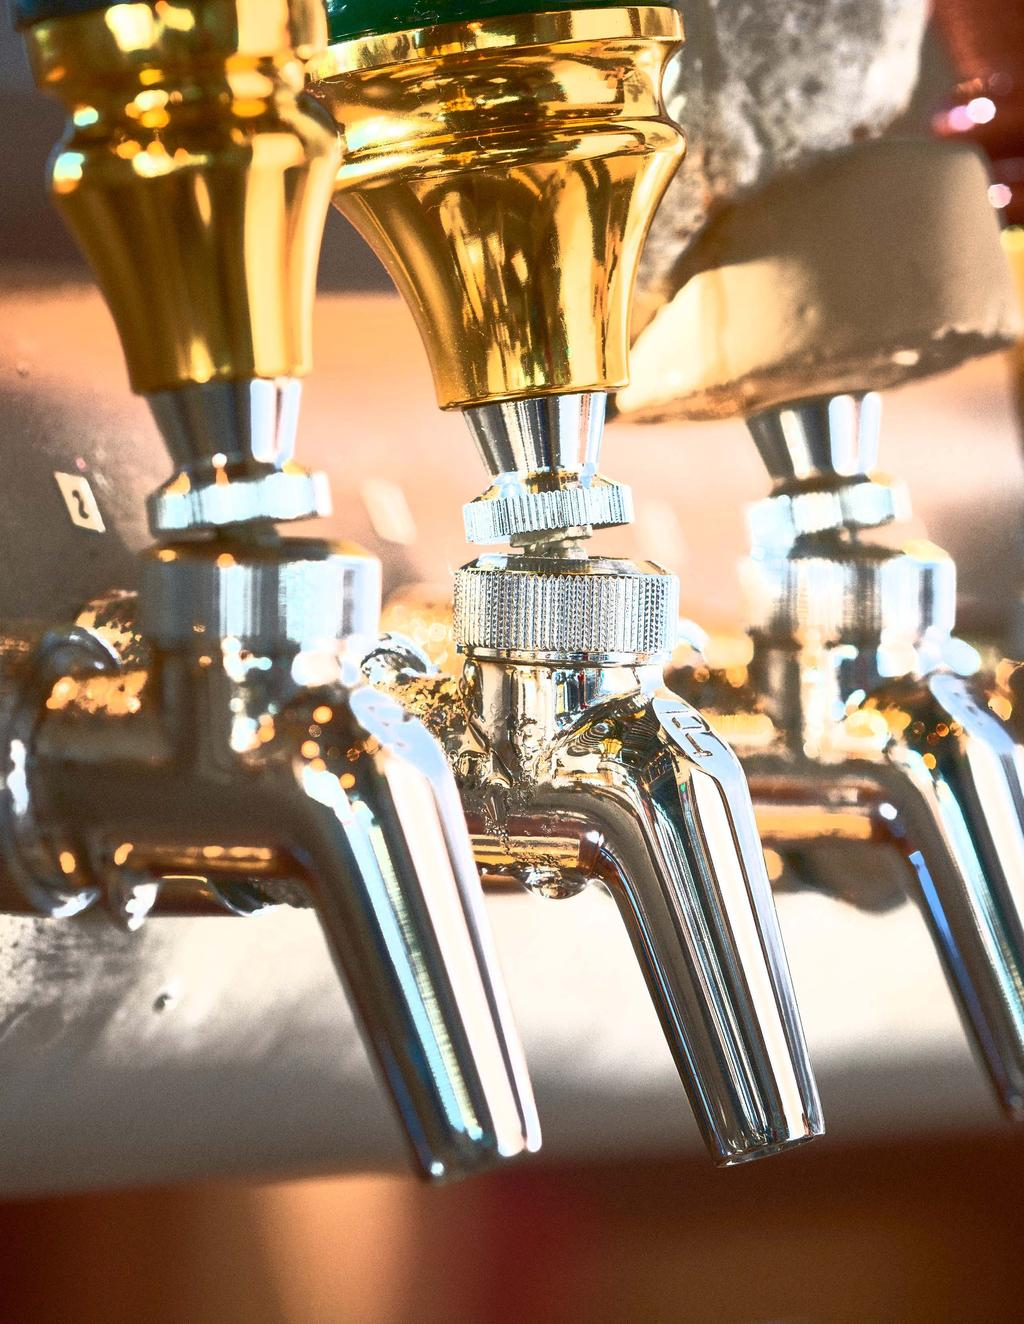 2017 Quick Chill Products Catalog Beverage Dispensing Components Perlick Wiring Diagram 1 Brewery Fittings Q U I C K H L Tm Perlickcom Prices Subject To